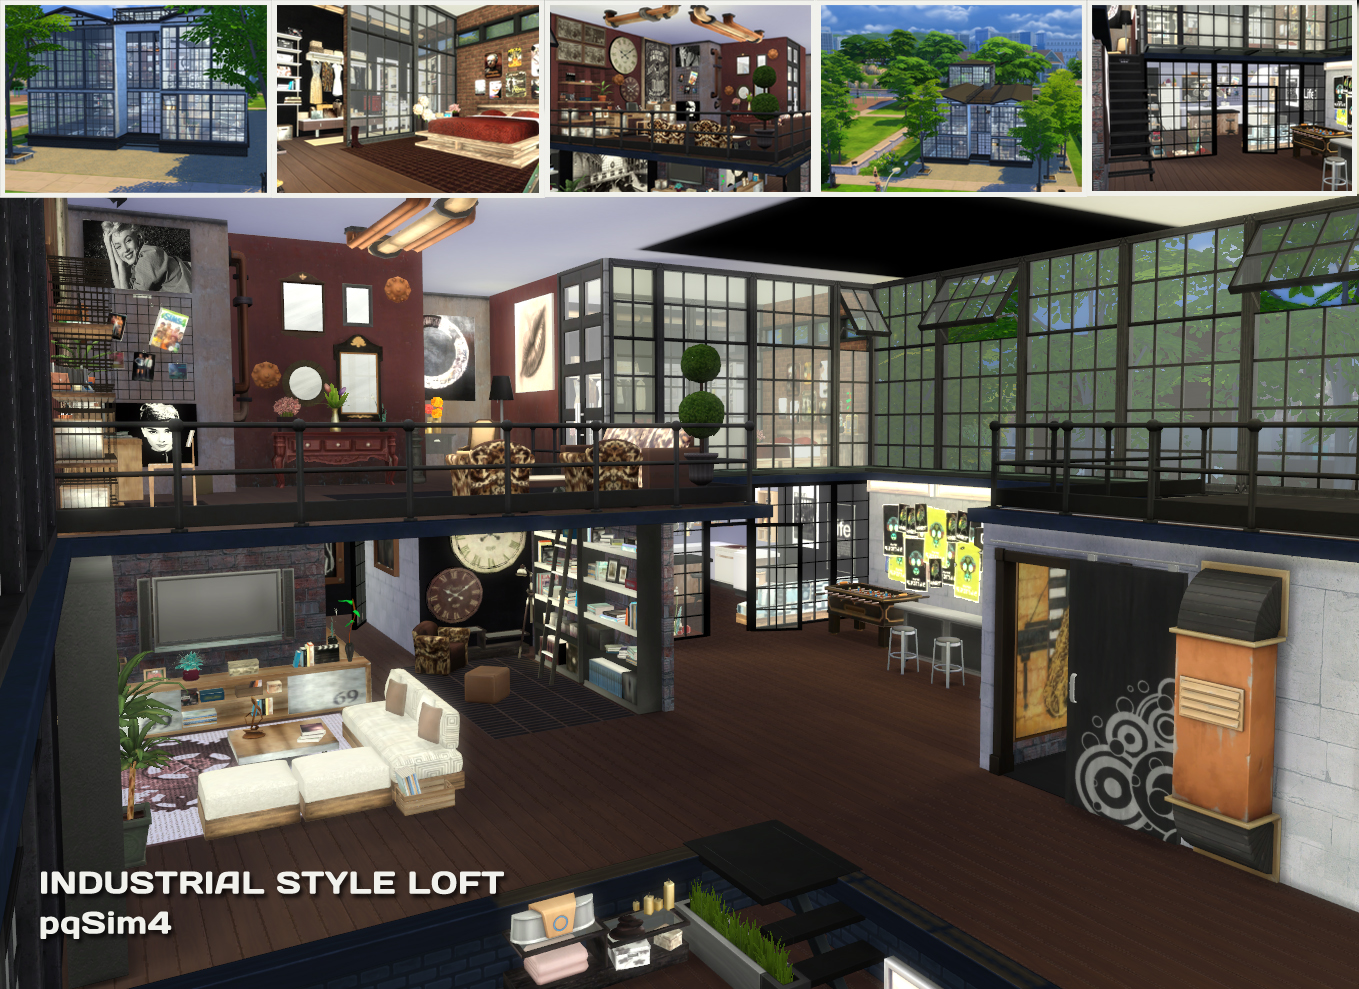 sims 4 cc's - the best: industrial style loft by pqsim4, Badezimmer ideen